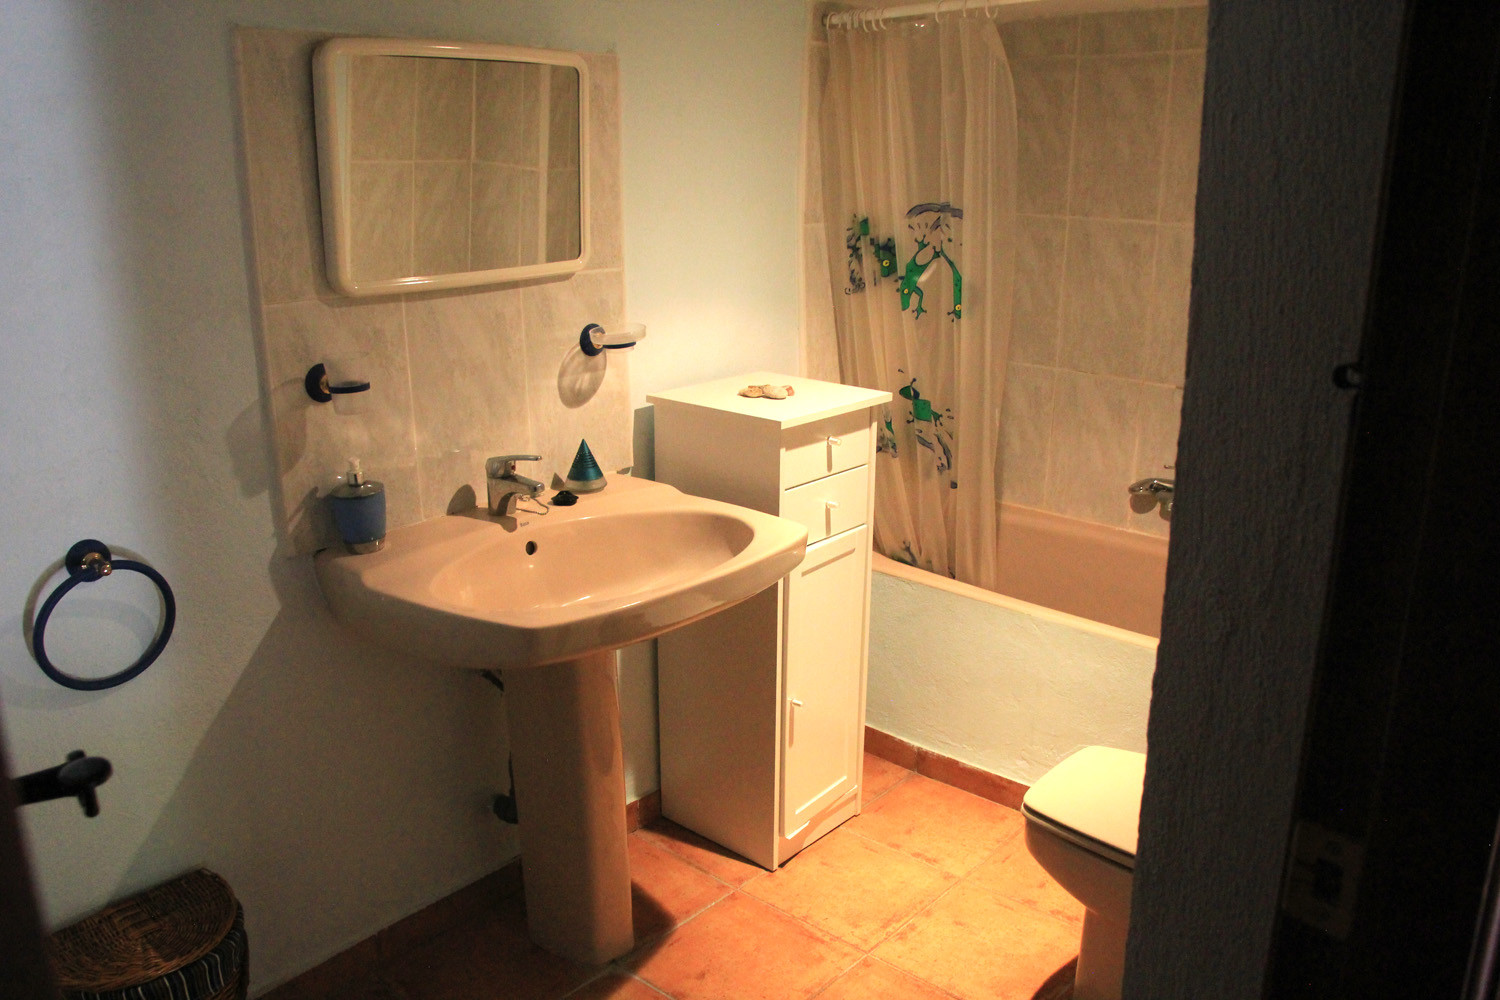 Bathroom (1st floor)